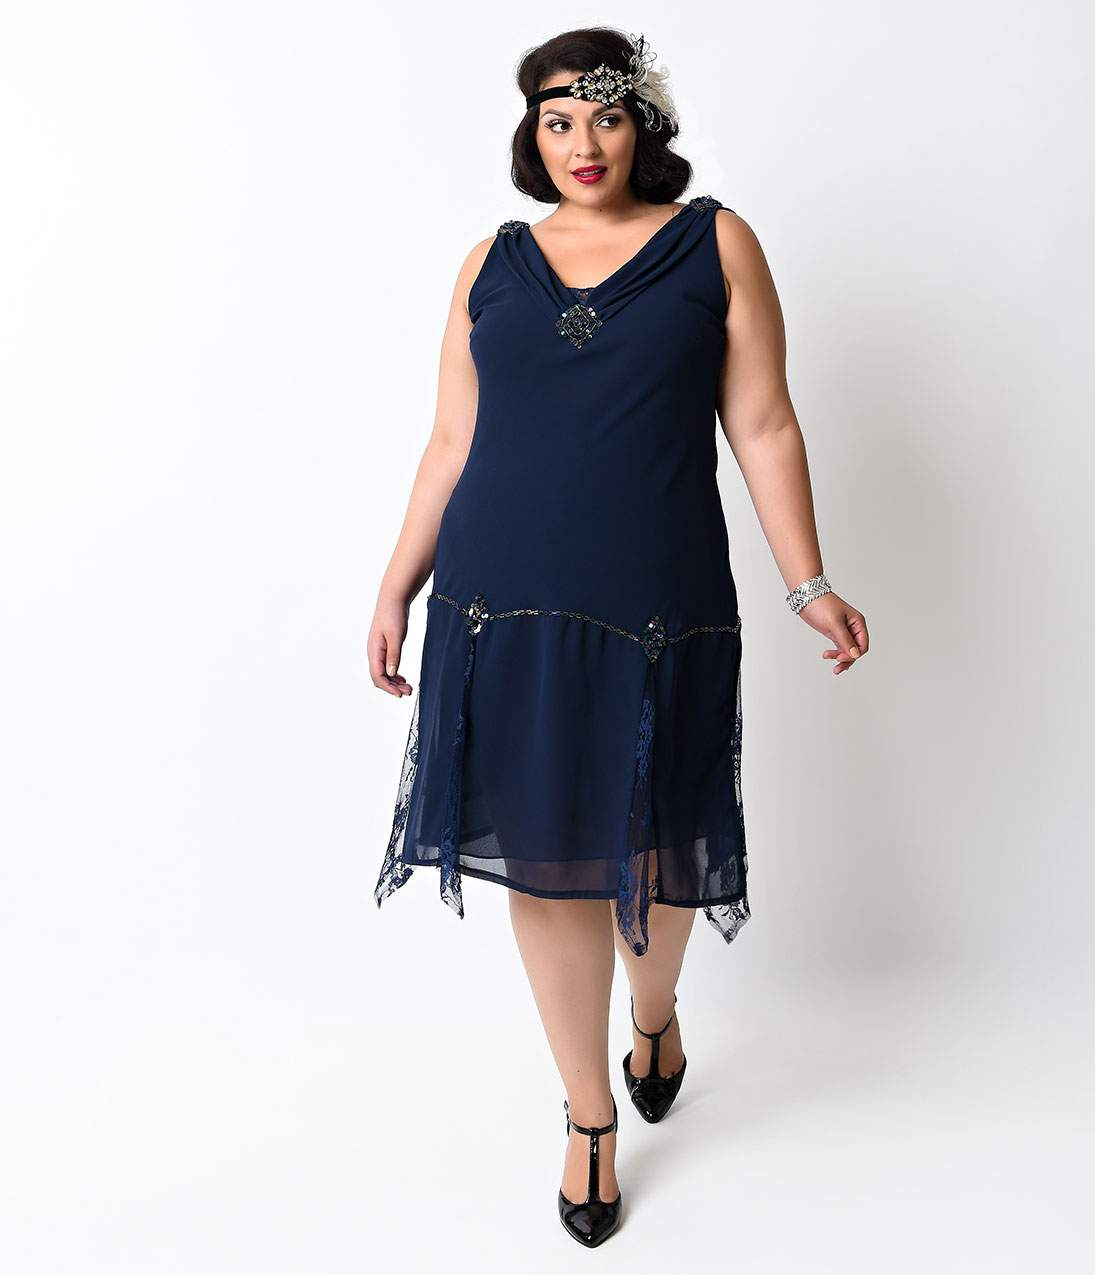 1920s Downton Abbey Fashion Unique Vintage Plus Size Navy Hemingway Flapper Dress $56.00 AT vintagedancer.com